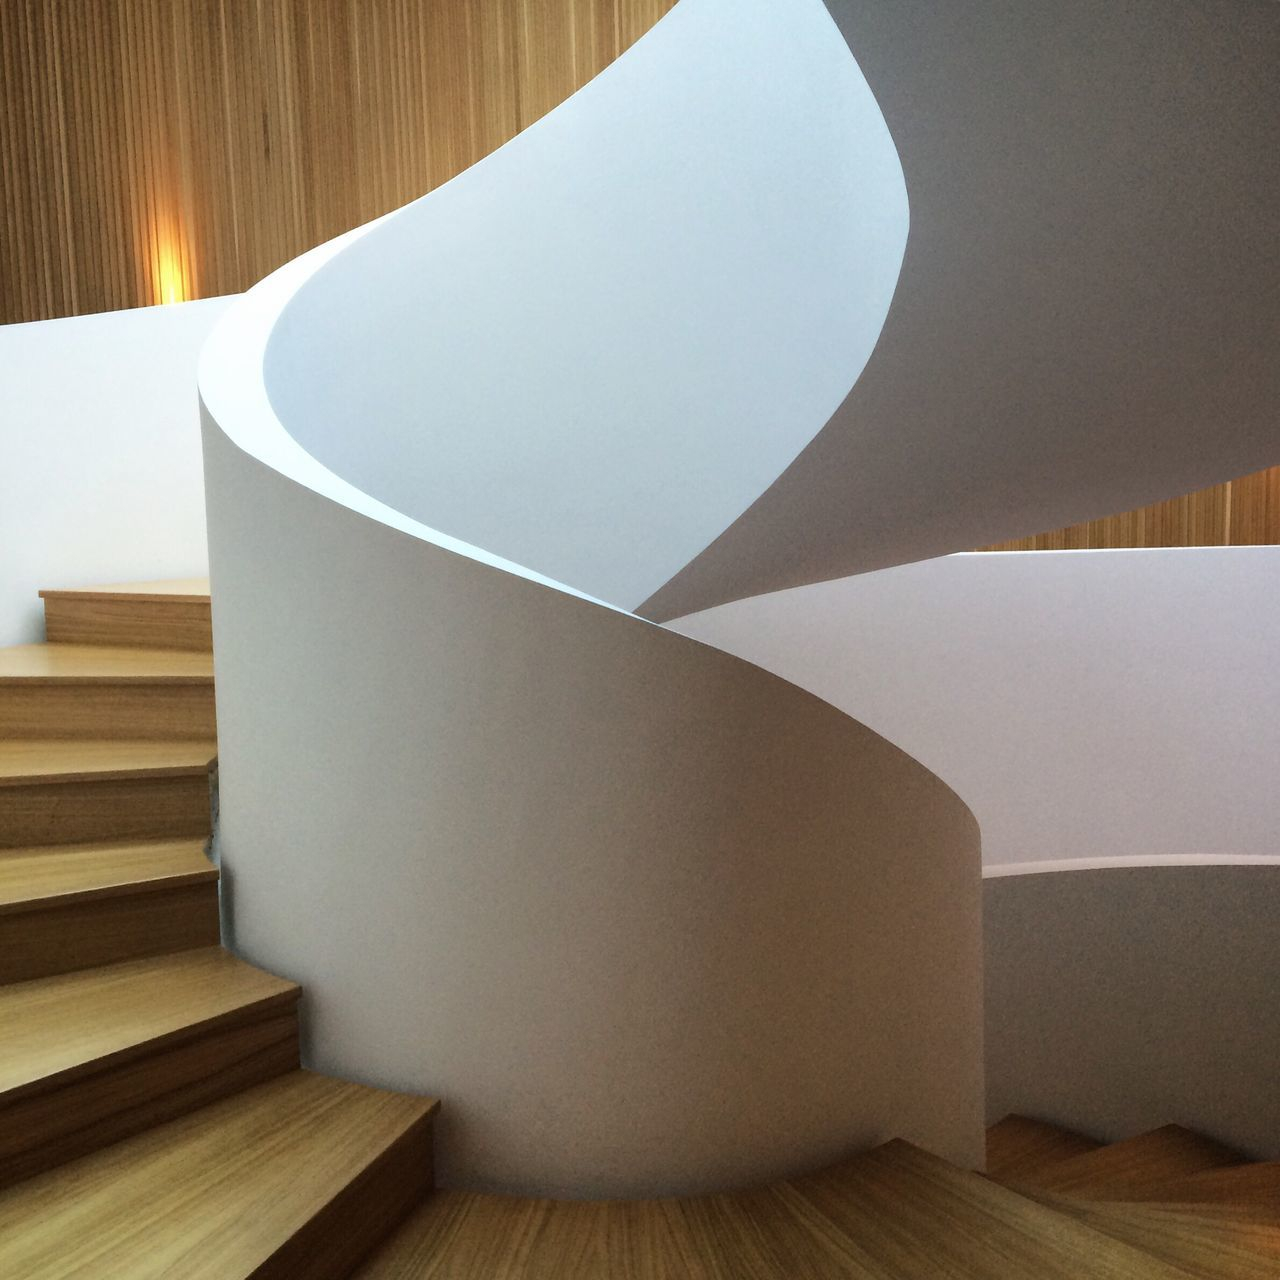 Indoors  Wood - Material Stairs Architecture Hotel Évora  Portugal